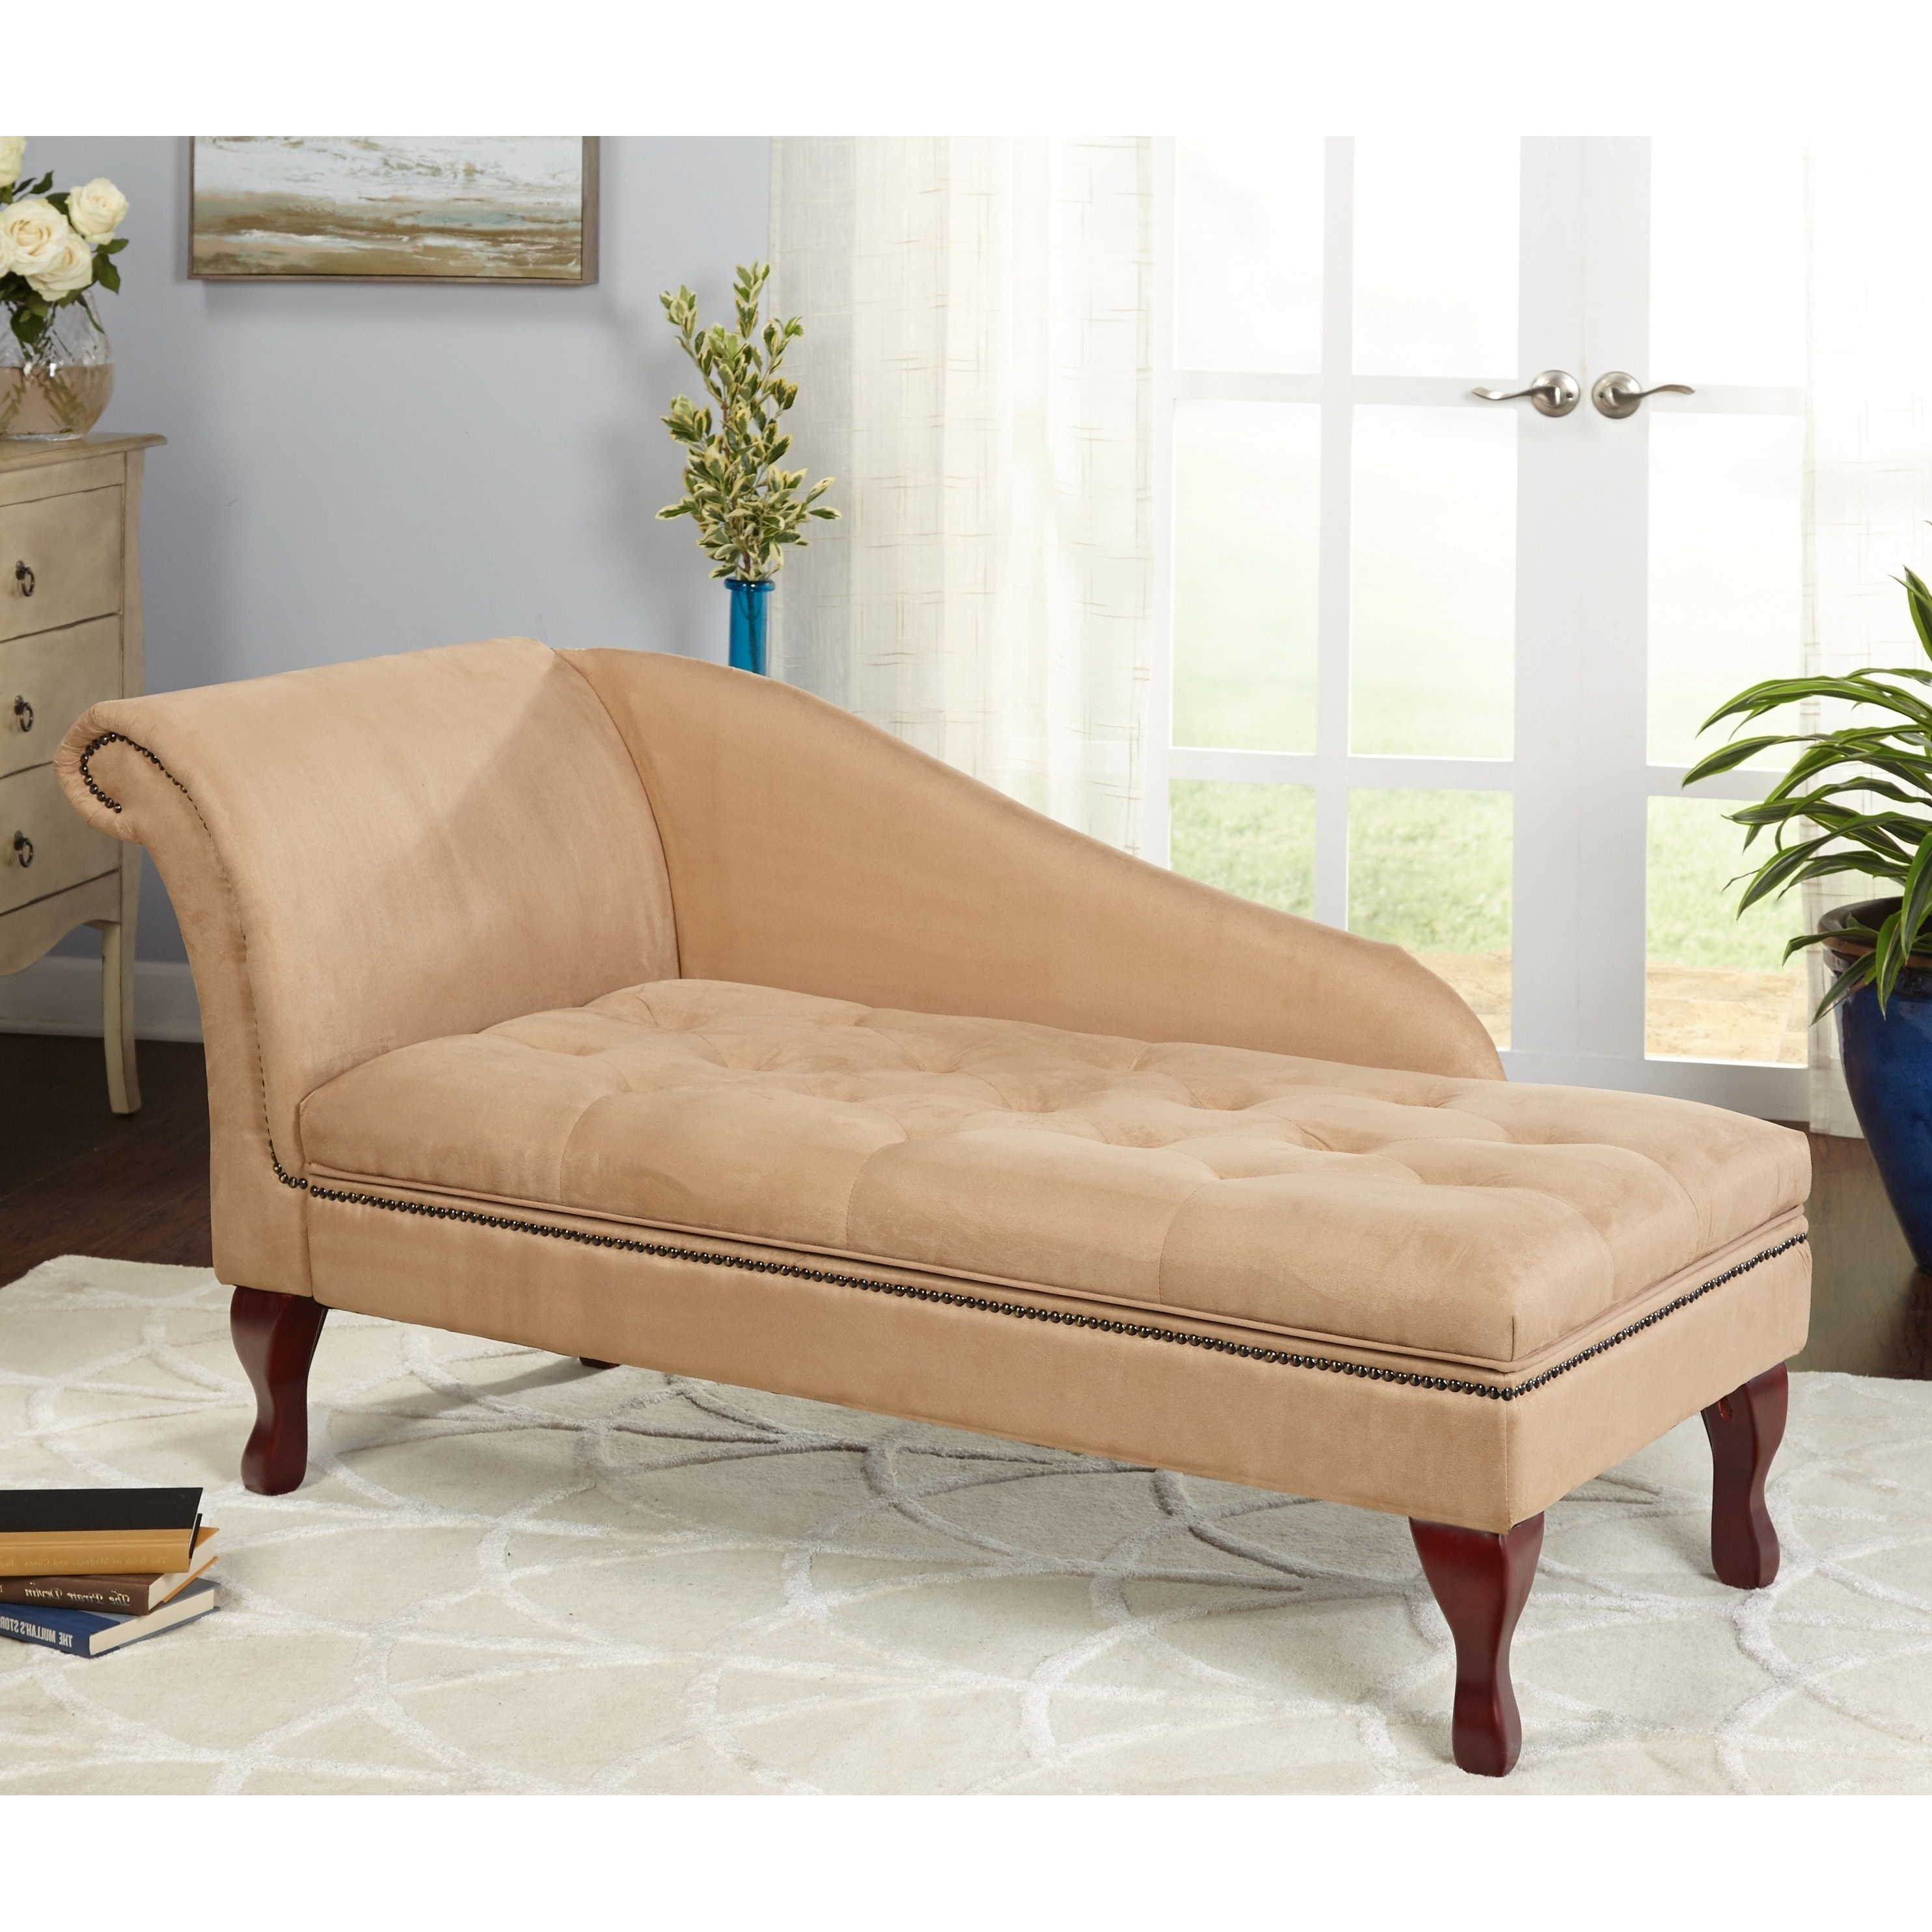 Current Simple Living Black Storage Chaise Lounge – Free Shipping Today Regarding Chaise Lounges (View 3 of 15)